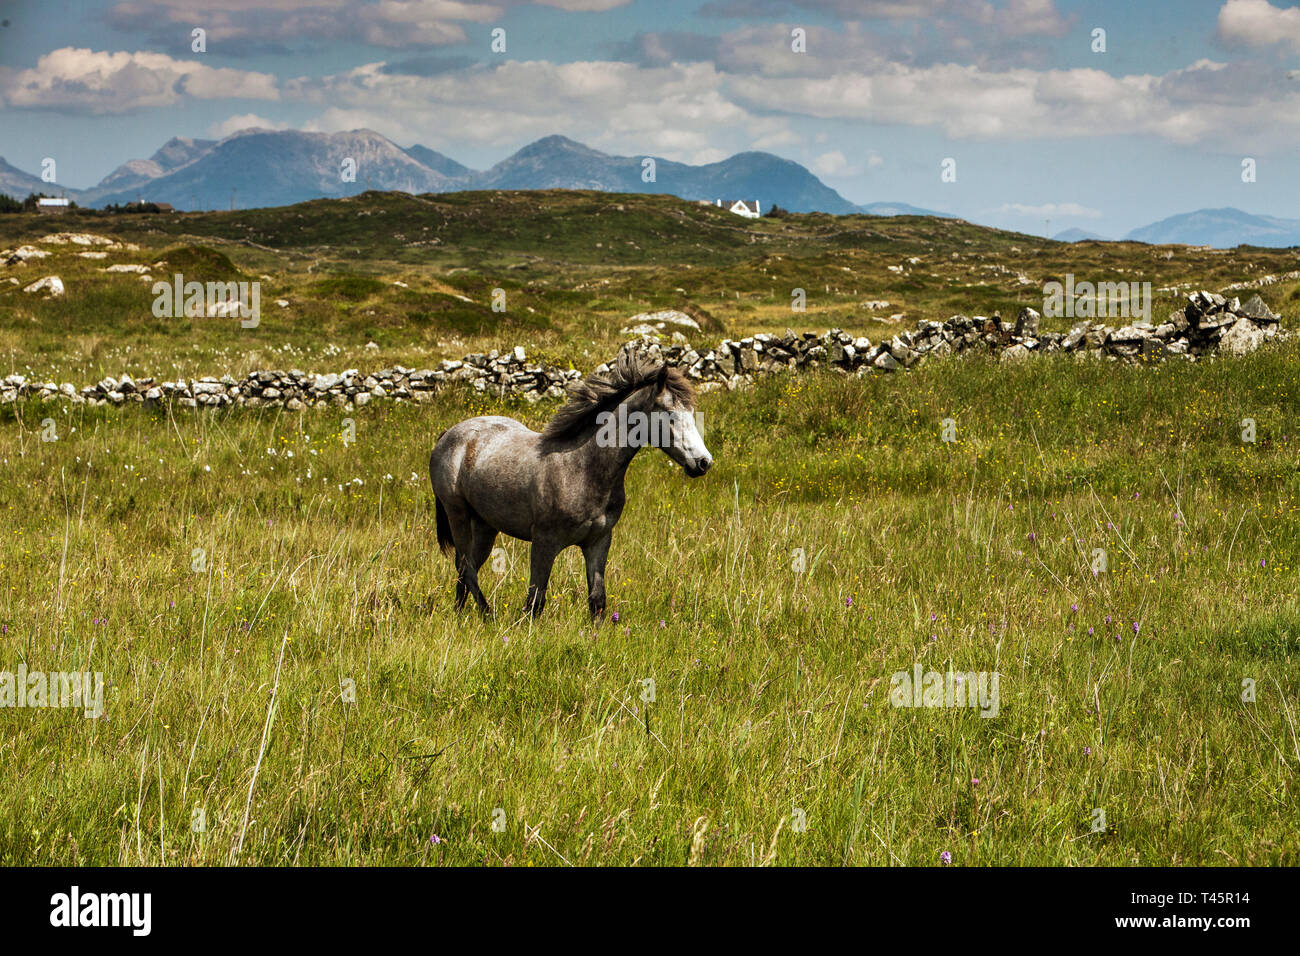 Connemara Pony breed in Irish landscape. A docile, friendly horse the Connemara Pony is sought after worldwide. - Stock Image